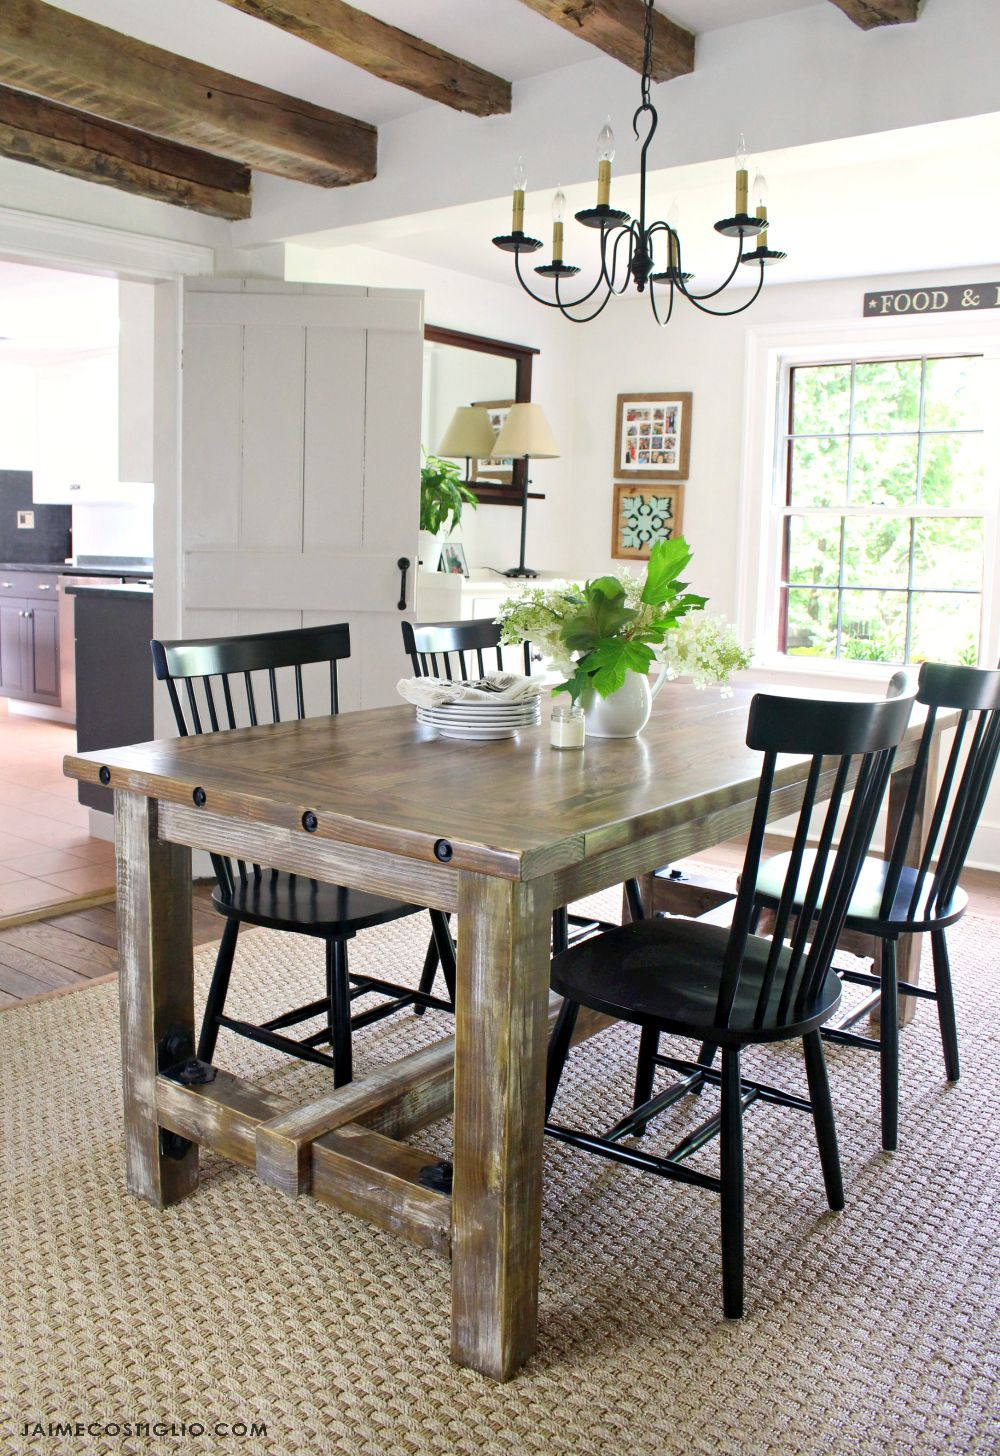 Diy how to build a faux barnwood dining table barnwood